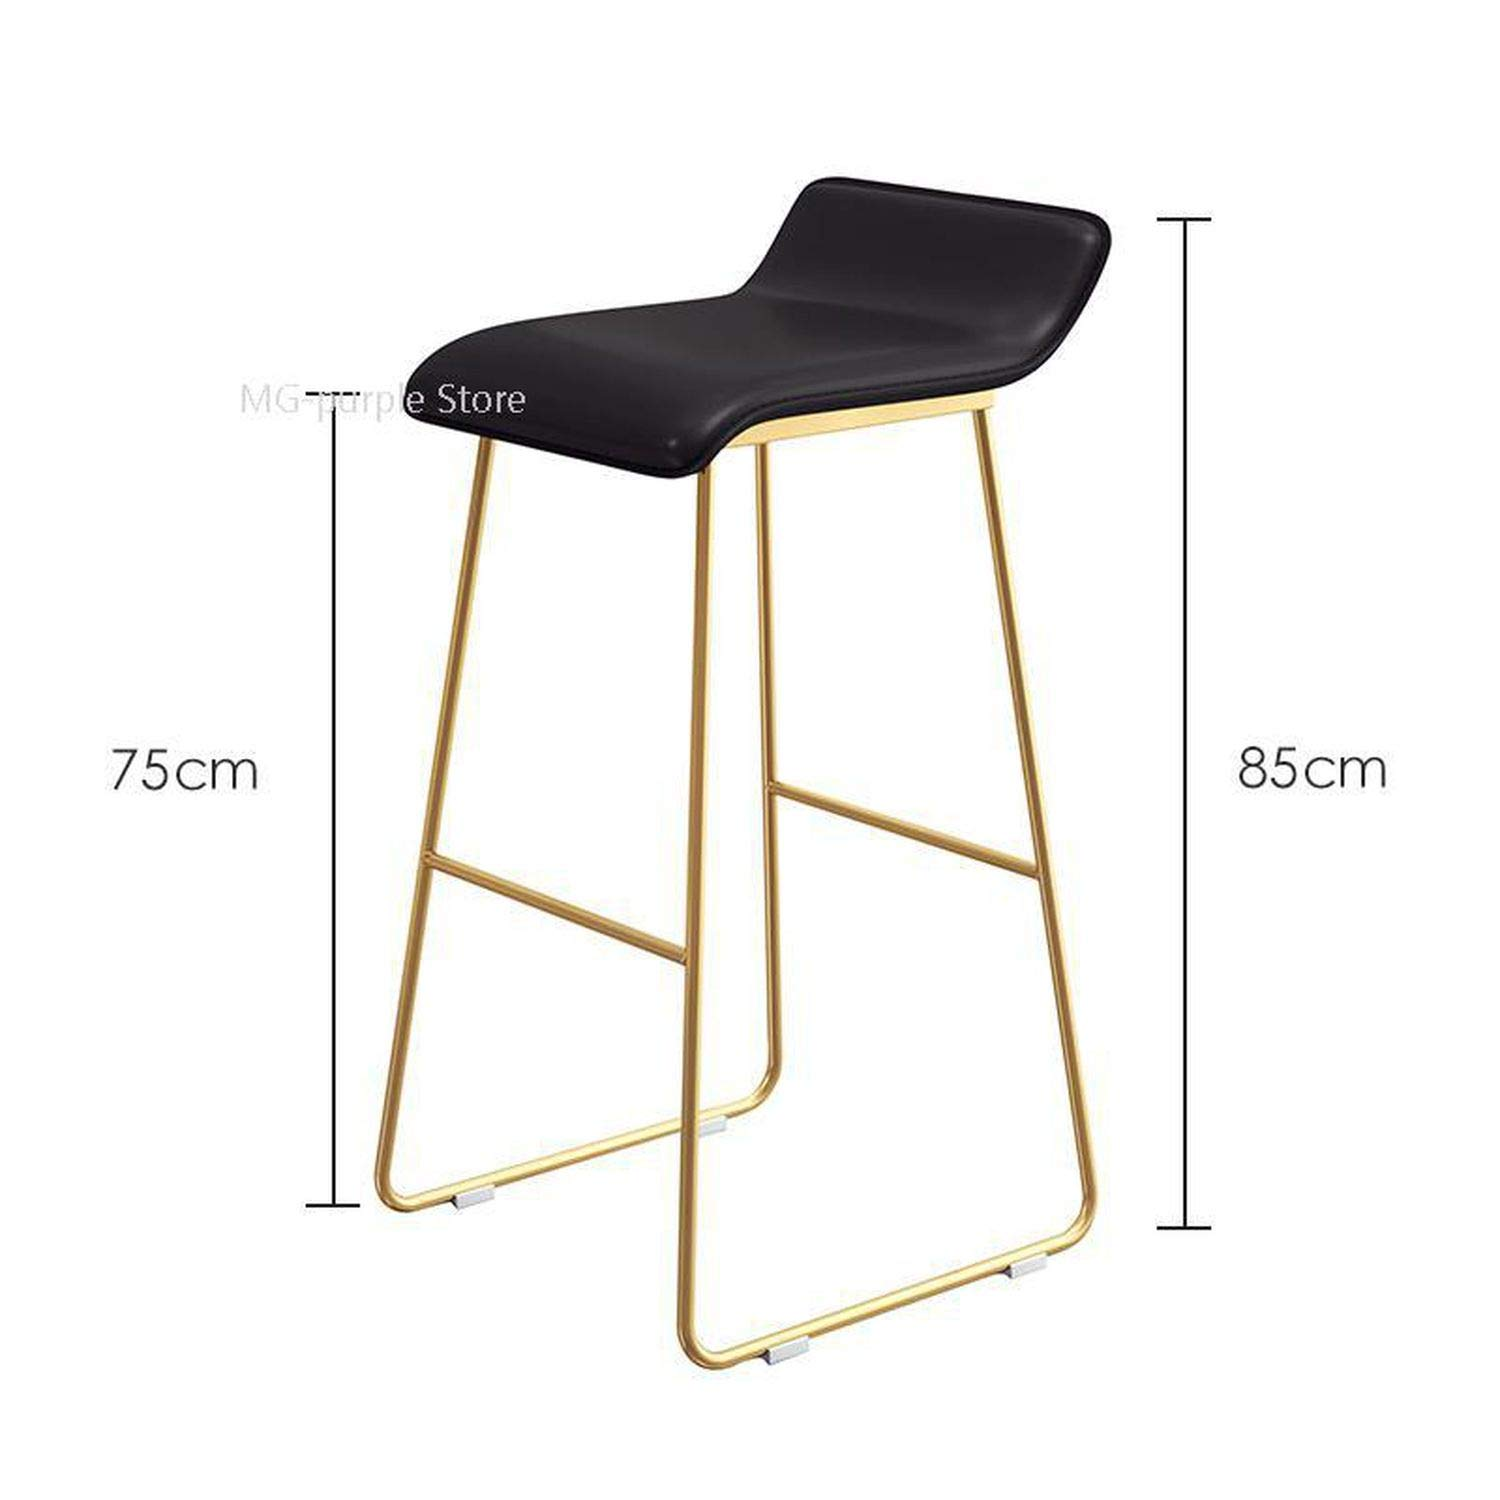 Style 15 one size Bar Chair Coffee Milk Tea Lounge Chair Simple Bar Stool Designer Wrought Iron gold High Chair Padded Bar Chair,Style 13